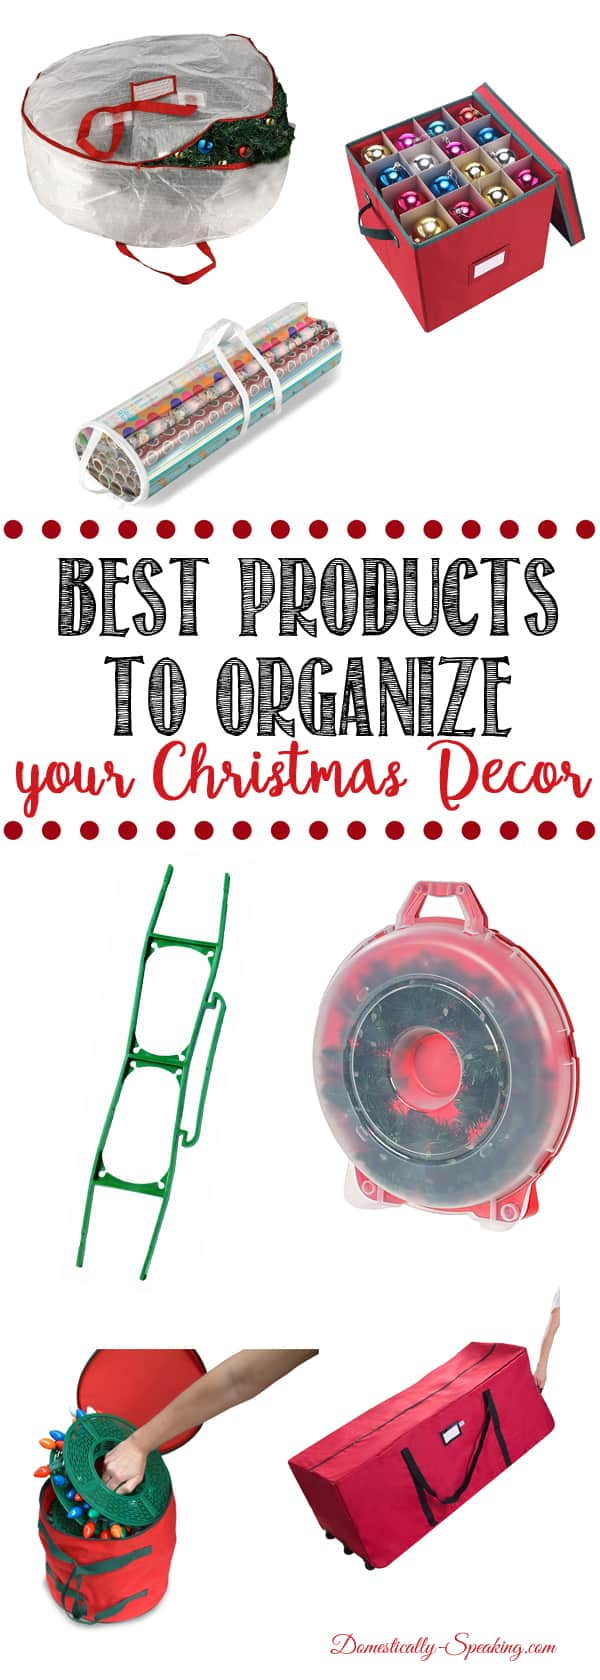 Best products to organize your Christmas decor, great storage ideas